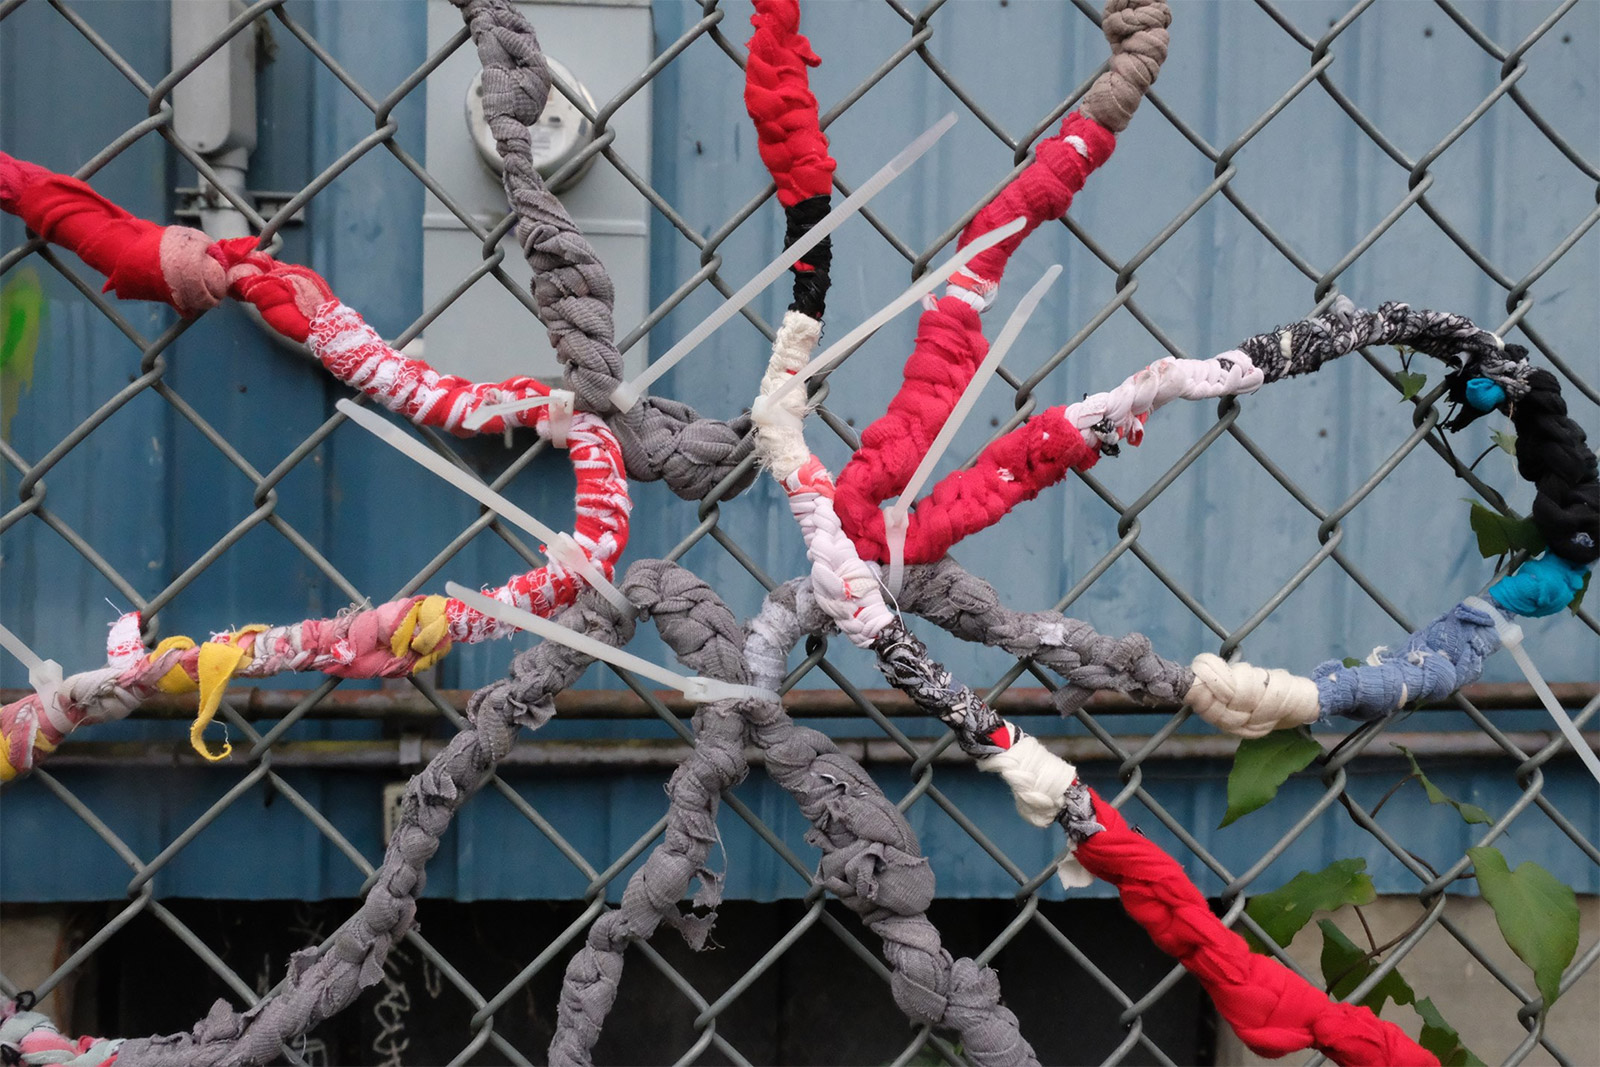 Colored t-shirts are tied to together and wrapped around a chain link fence to resemble a flower.